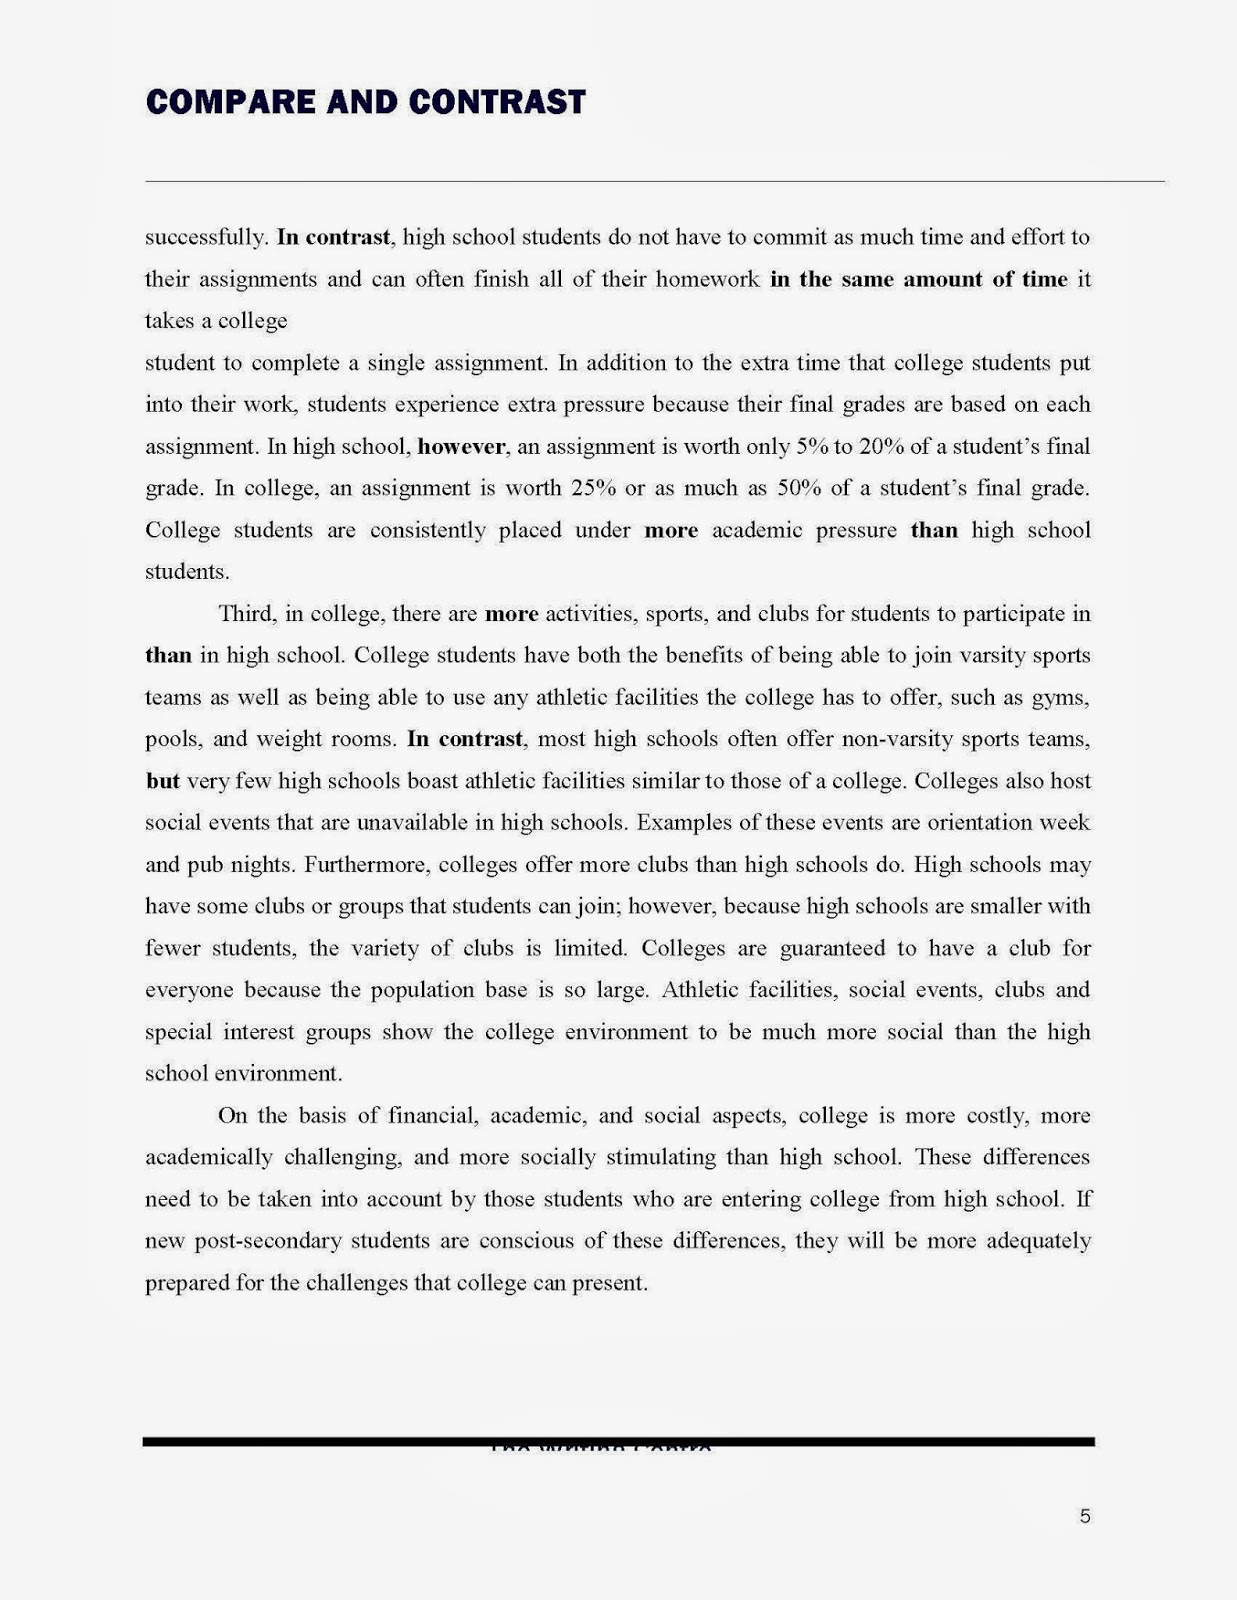 Essay Proposal Outline Essay On The Giver By Lois Lowry Essay On The Book The Giver By Compare And Essay About High School also Health Needs Assessment Essay Compare And Contrast Essay High School Vs College Essay On The  Informative Synthesis Essay